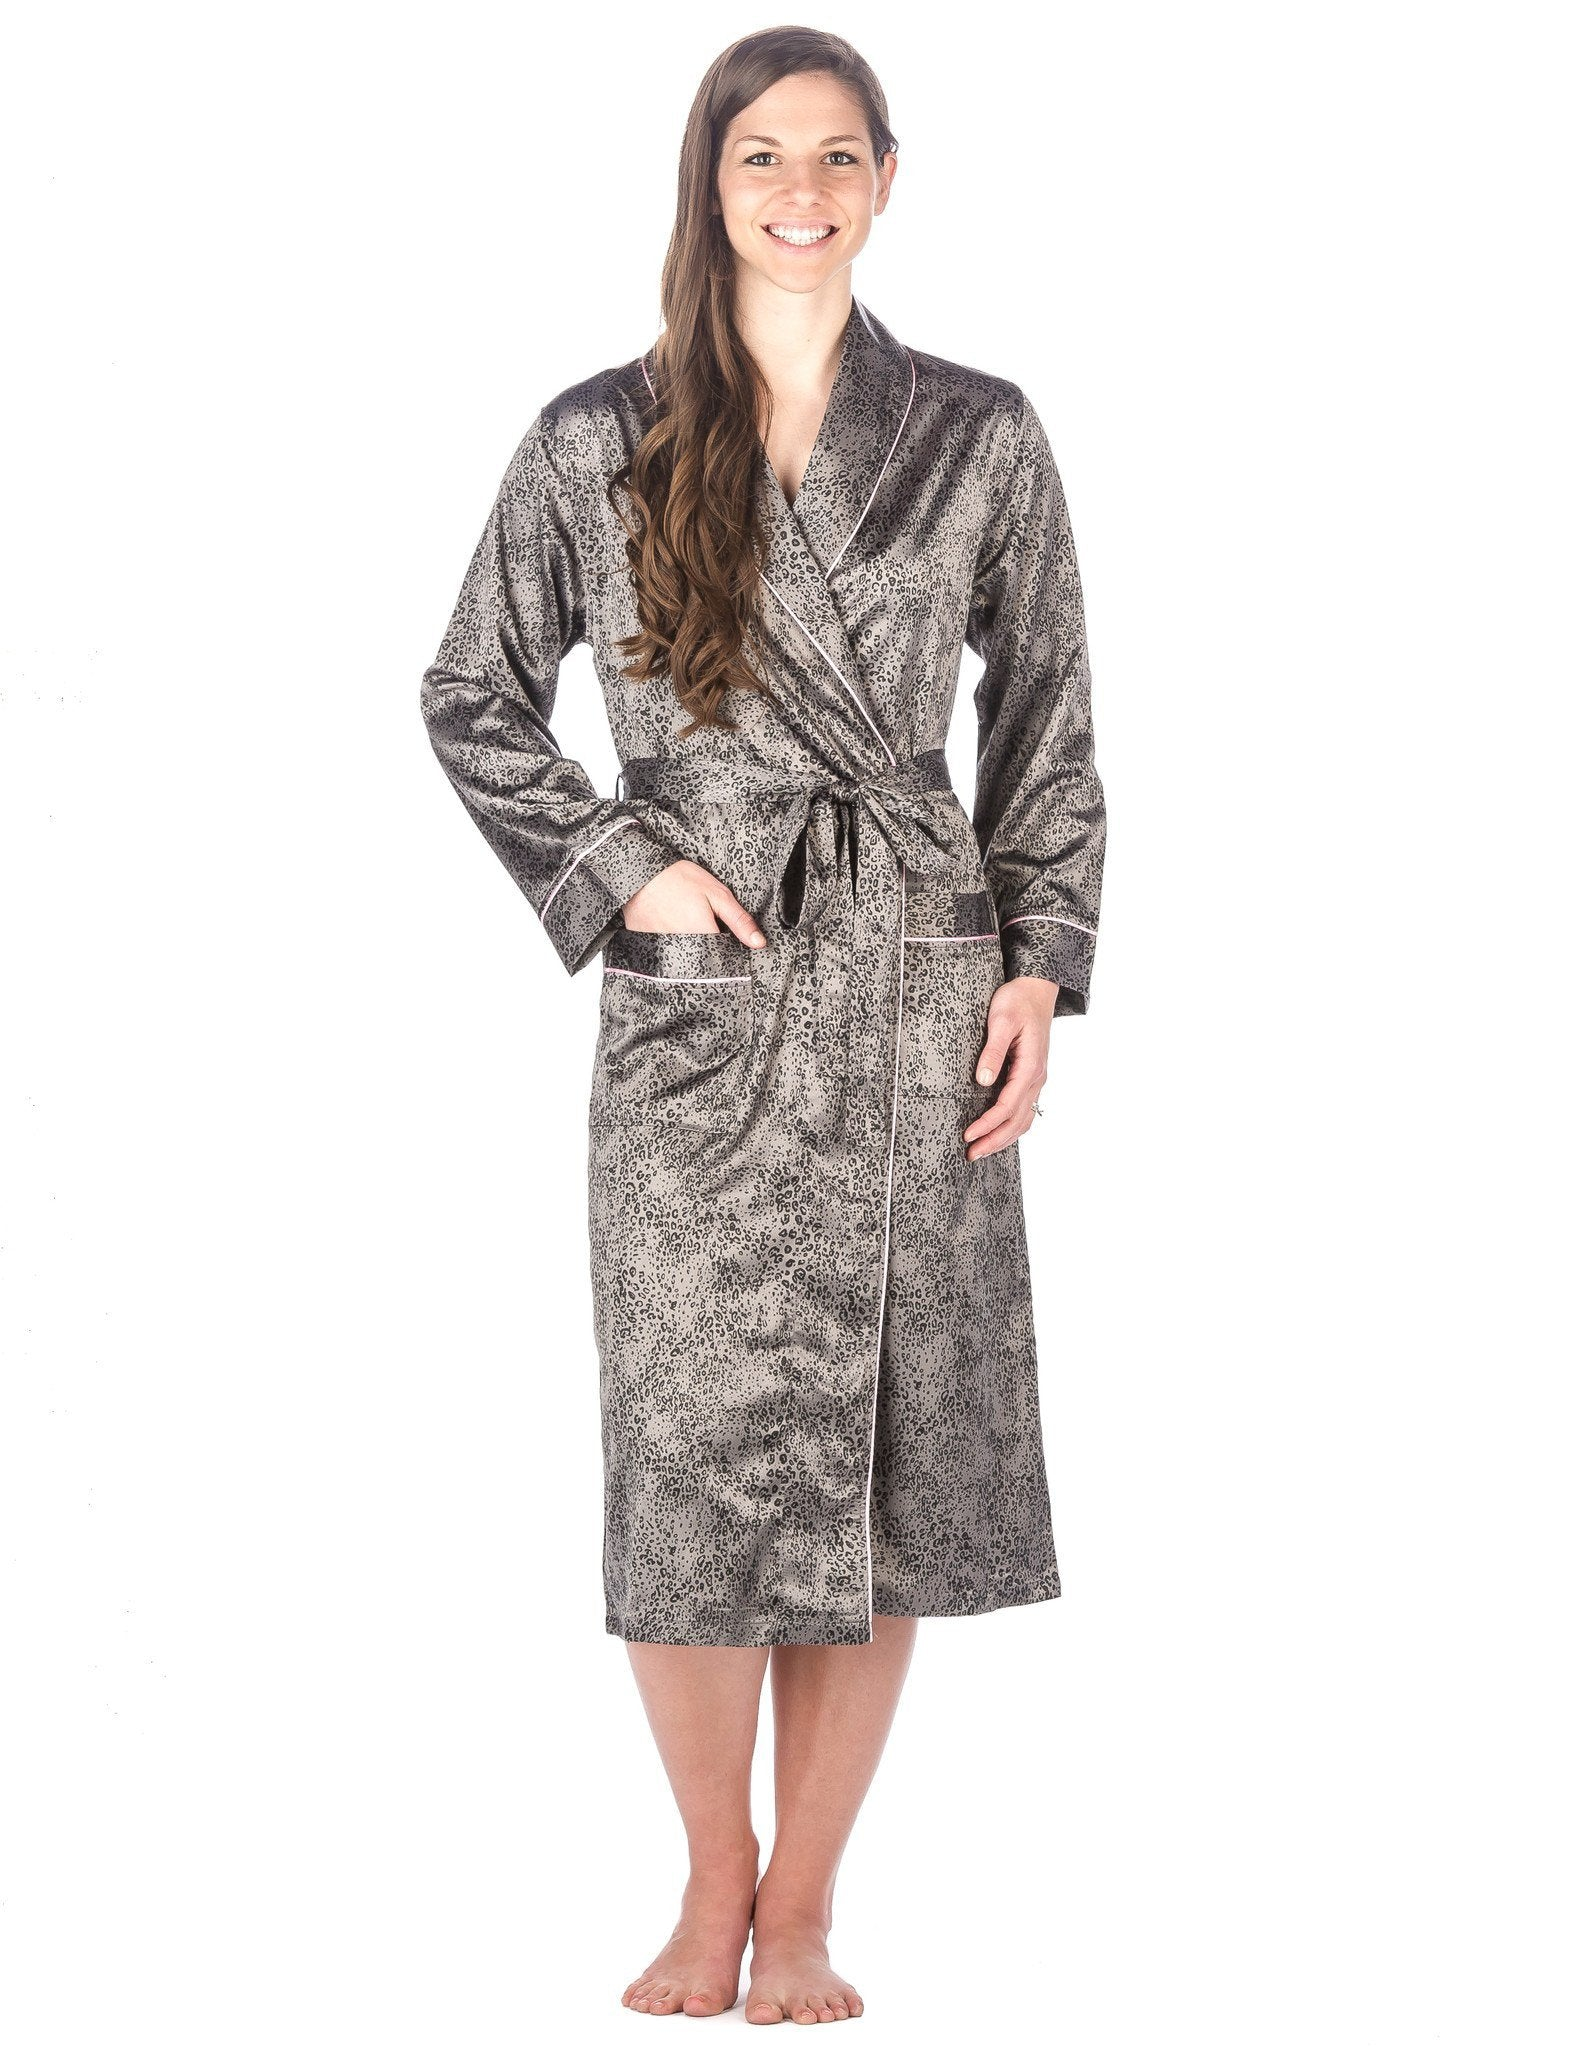 Women's Premium Satin Robe - Leopard - Gray/Black